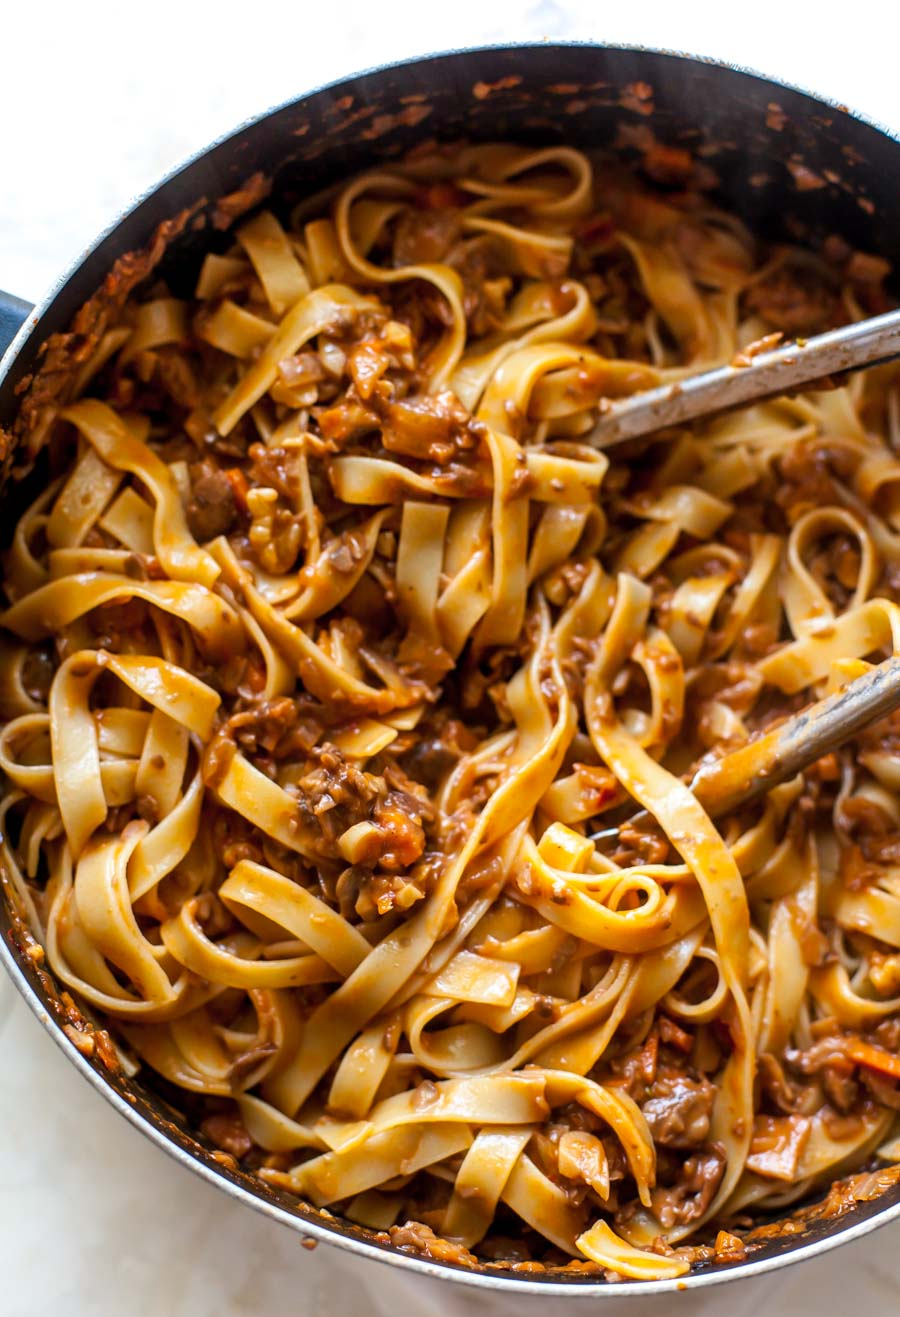 Pasta Bolognese with Mushrooms and Walnuts